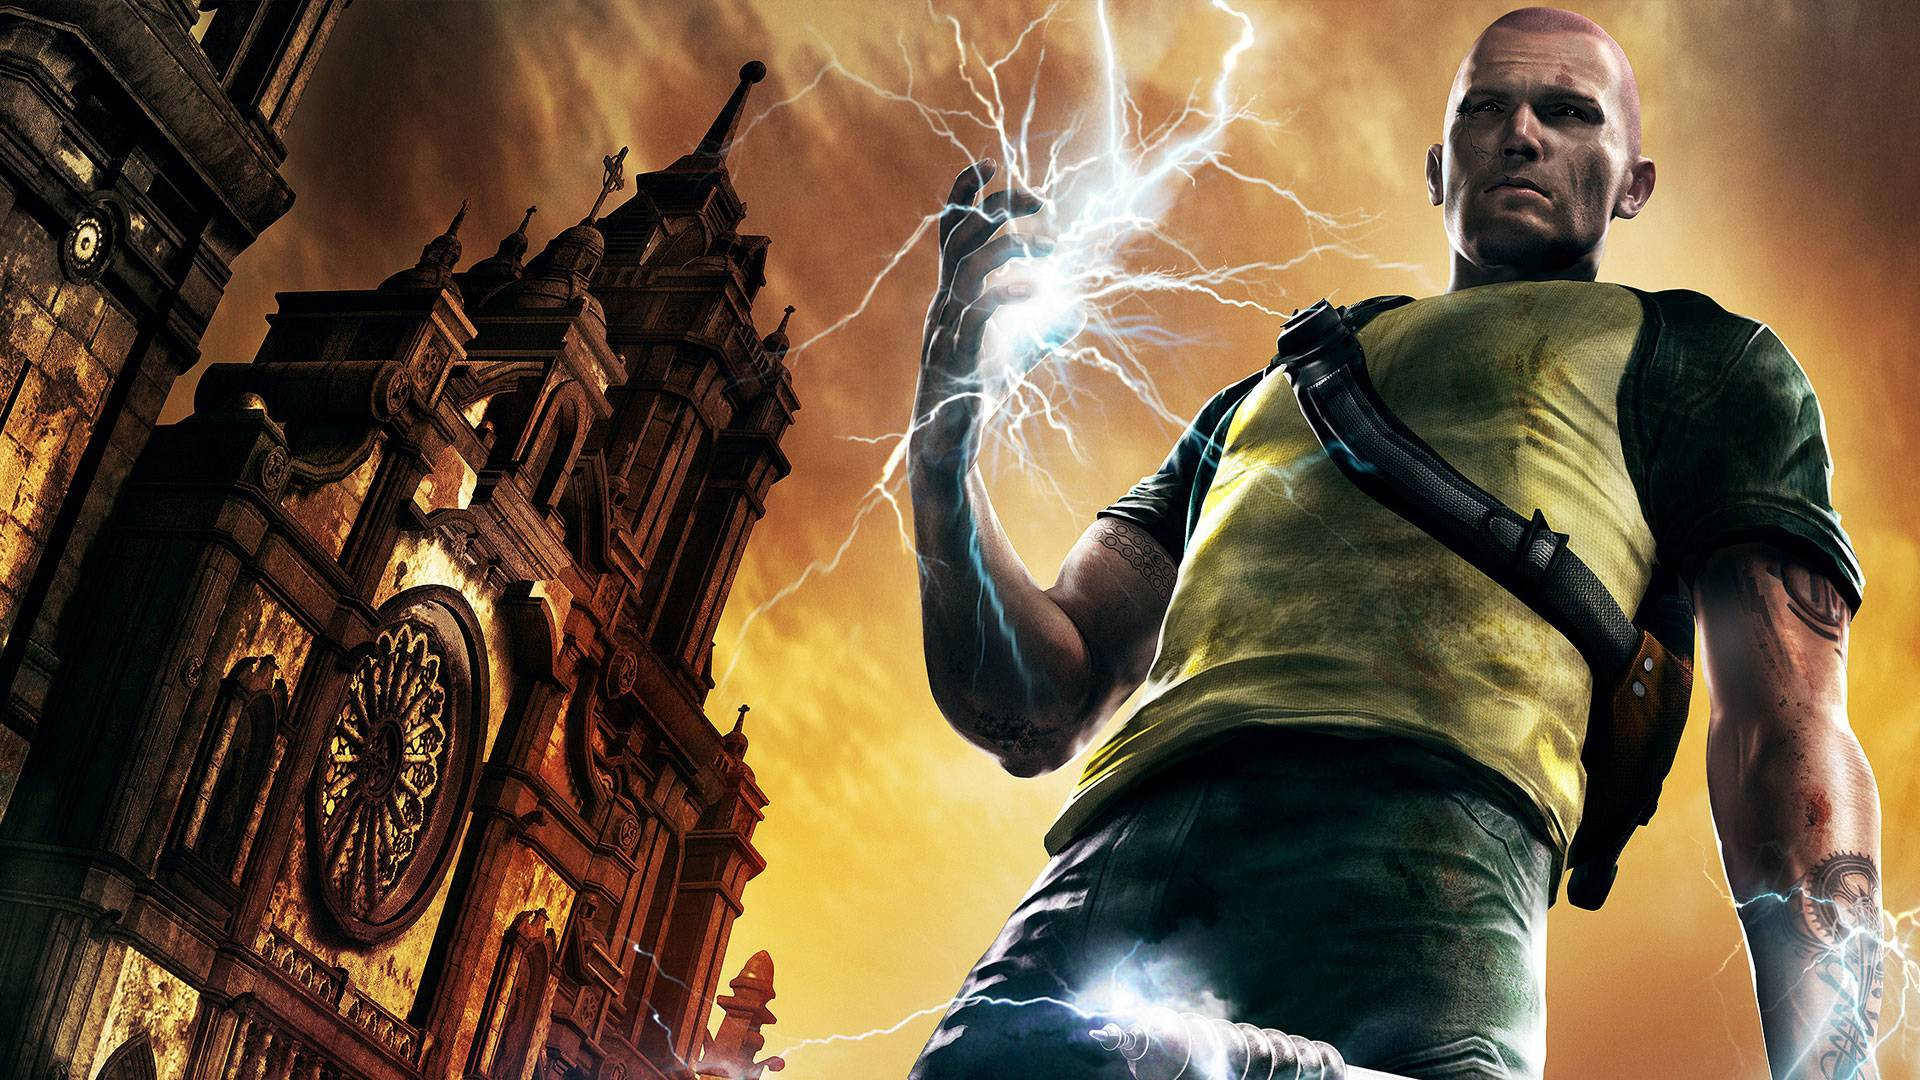 inFamous 2 Wallpapers in full 1080P HD « GamingBolt: Video